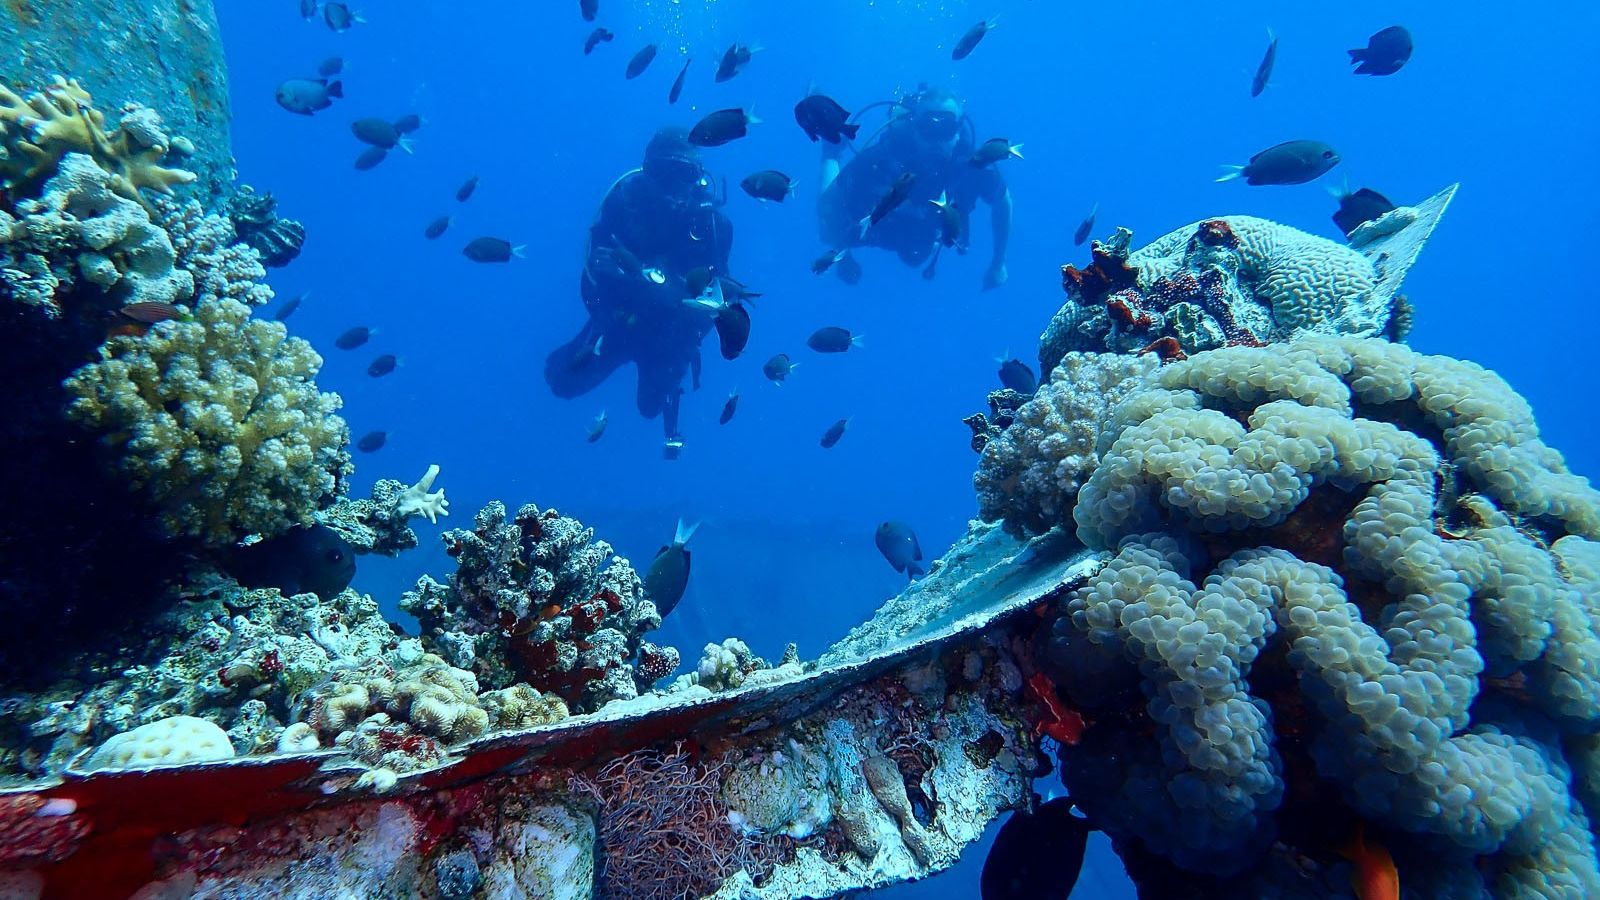 Diving in the Red Sea, Aqaba